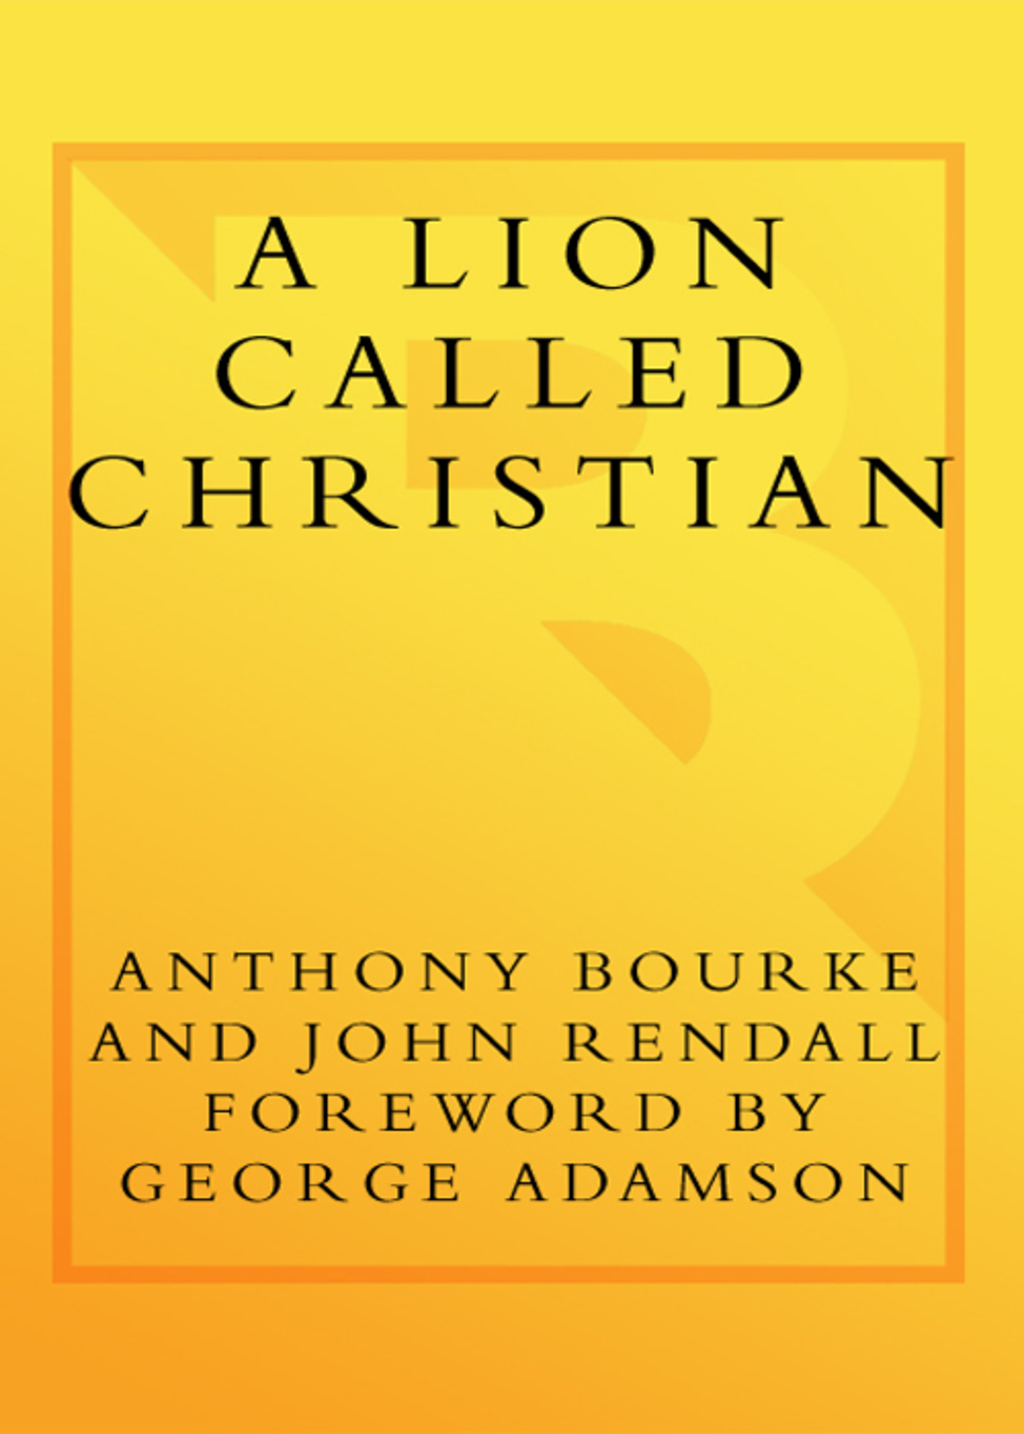 By Anthony Bourke PRINTISBN: 9780767932301 E-TEXT ISBN: 9780767932332 Edition: 0